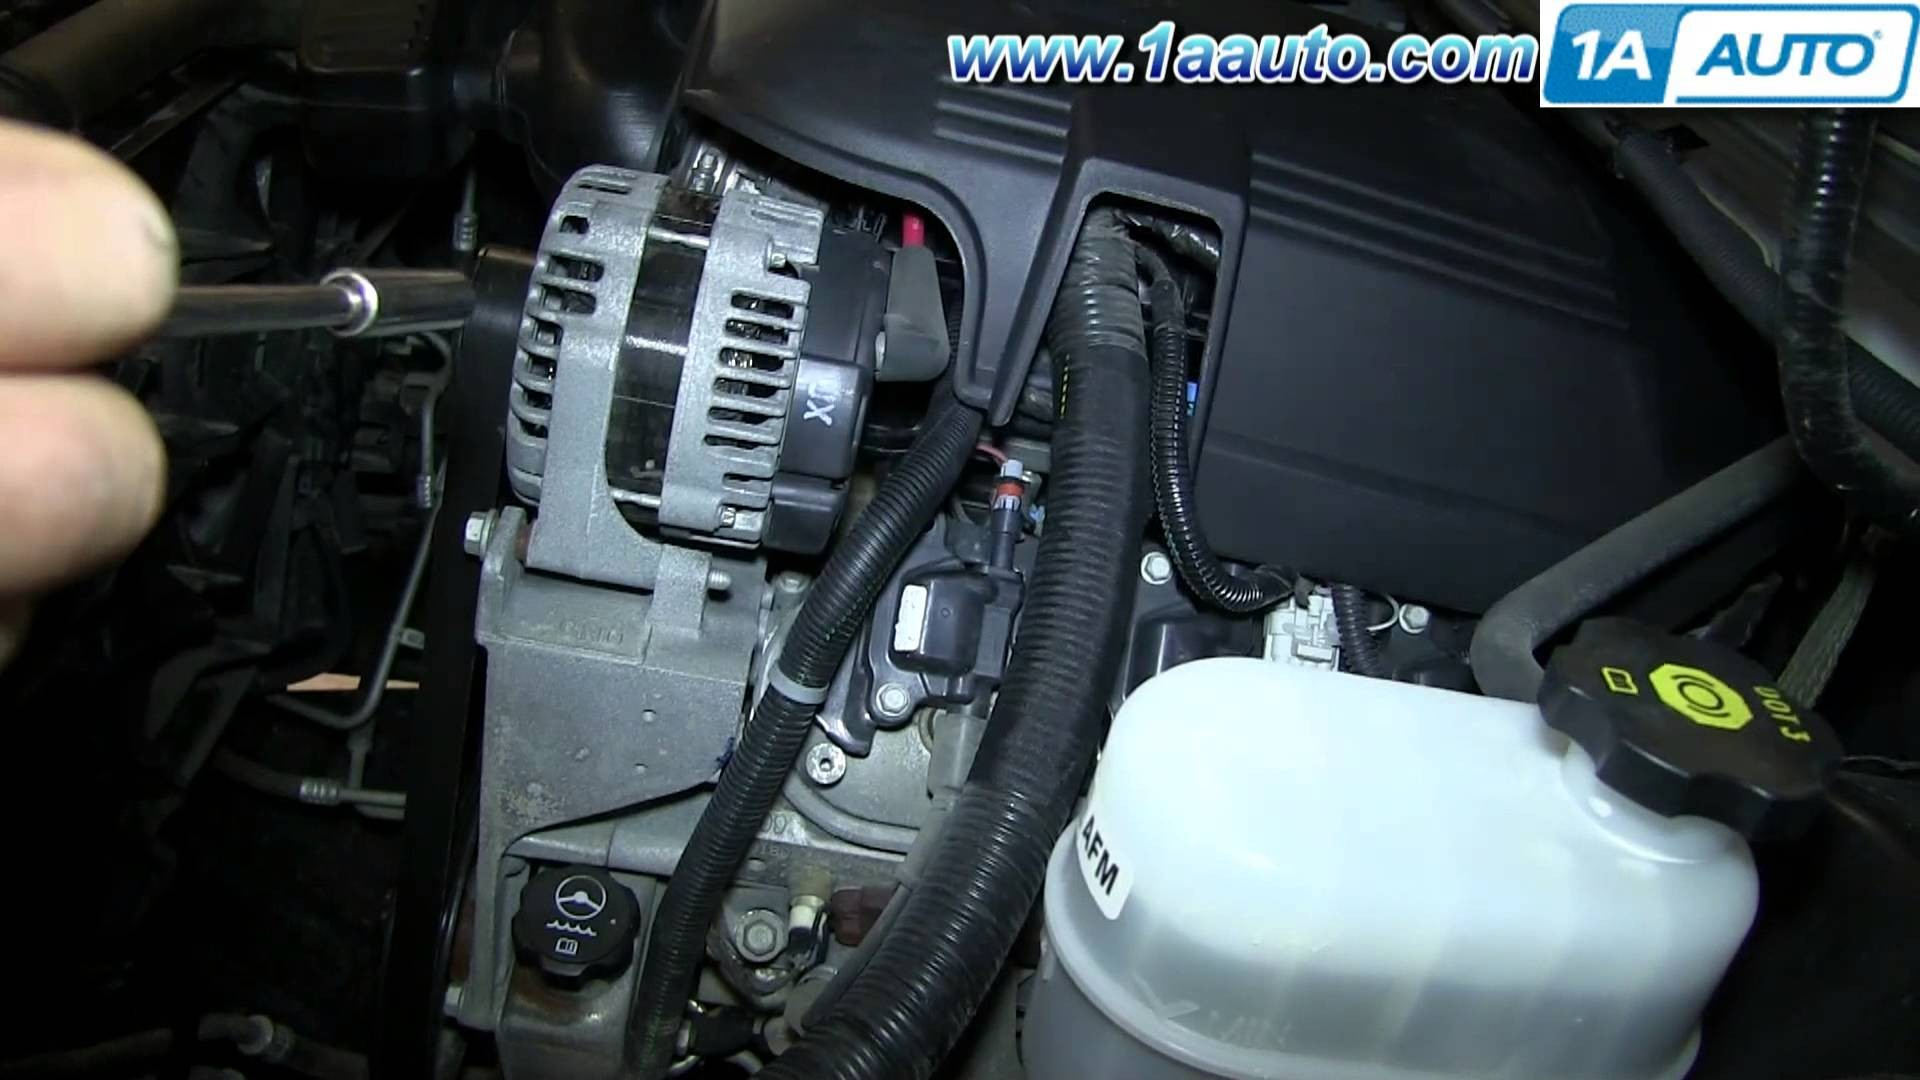 2007 Chevy Equinox Engine Diagram How to Install Replace Engine Ignition Coil 2007 13 Chevy Silverado Of 2007 Chevy Equinox Engine Diagram